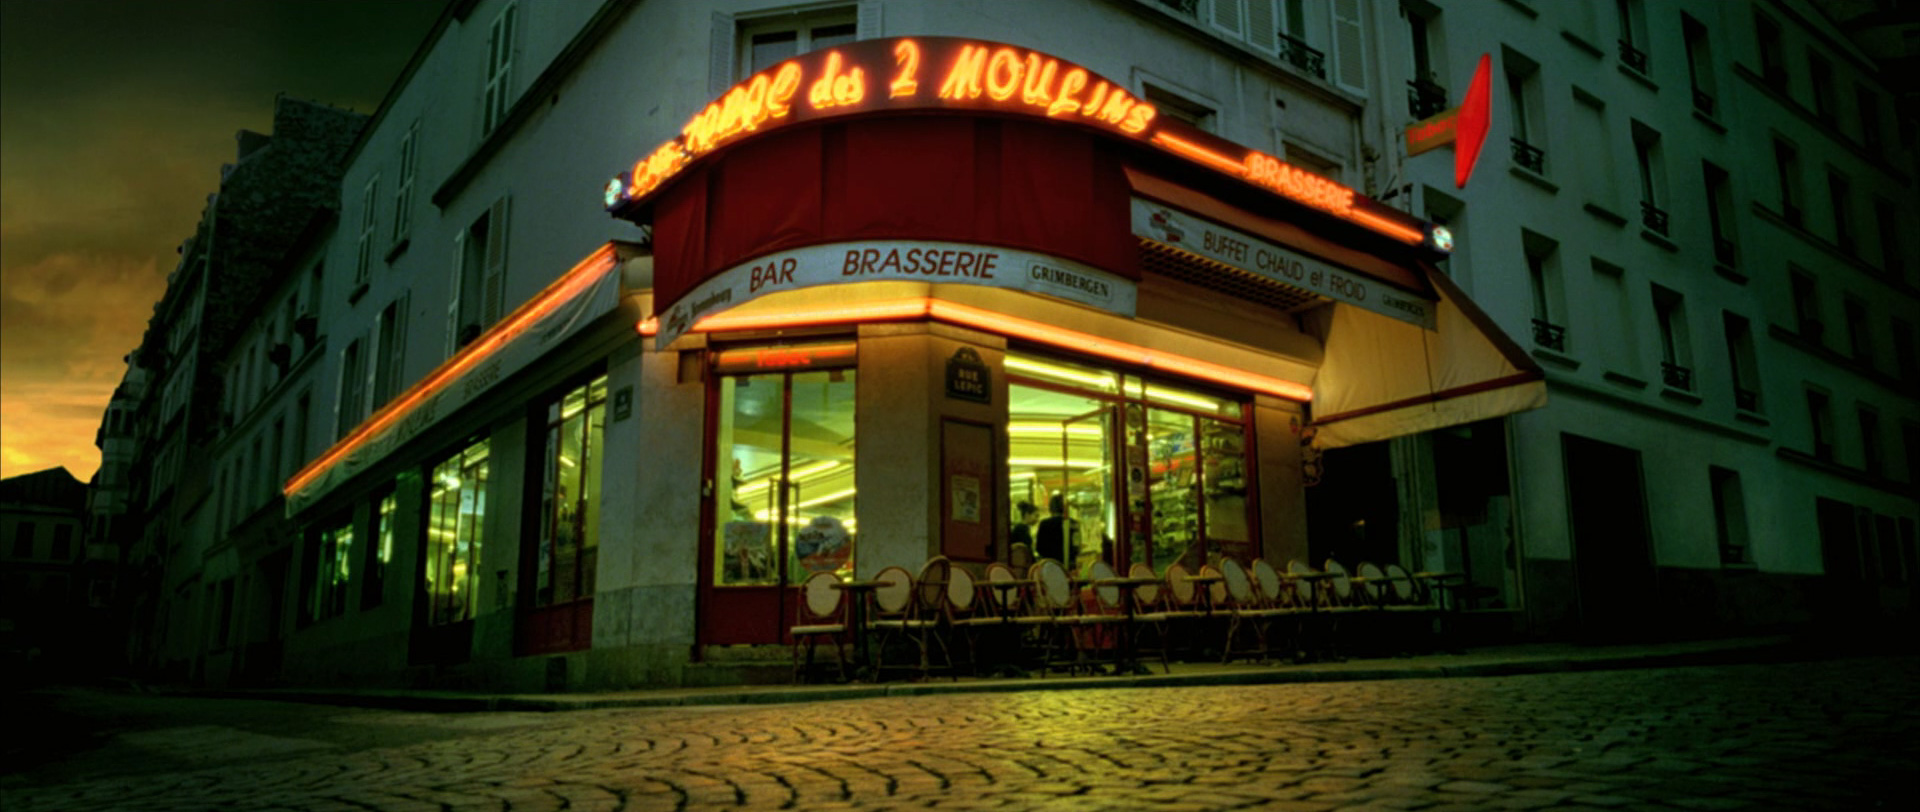 Cafe De Moulins Paris